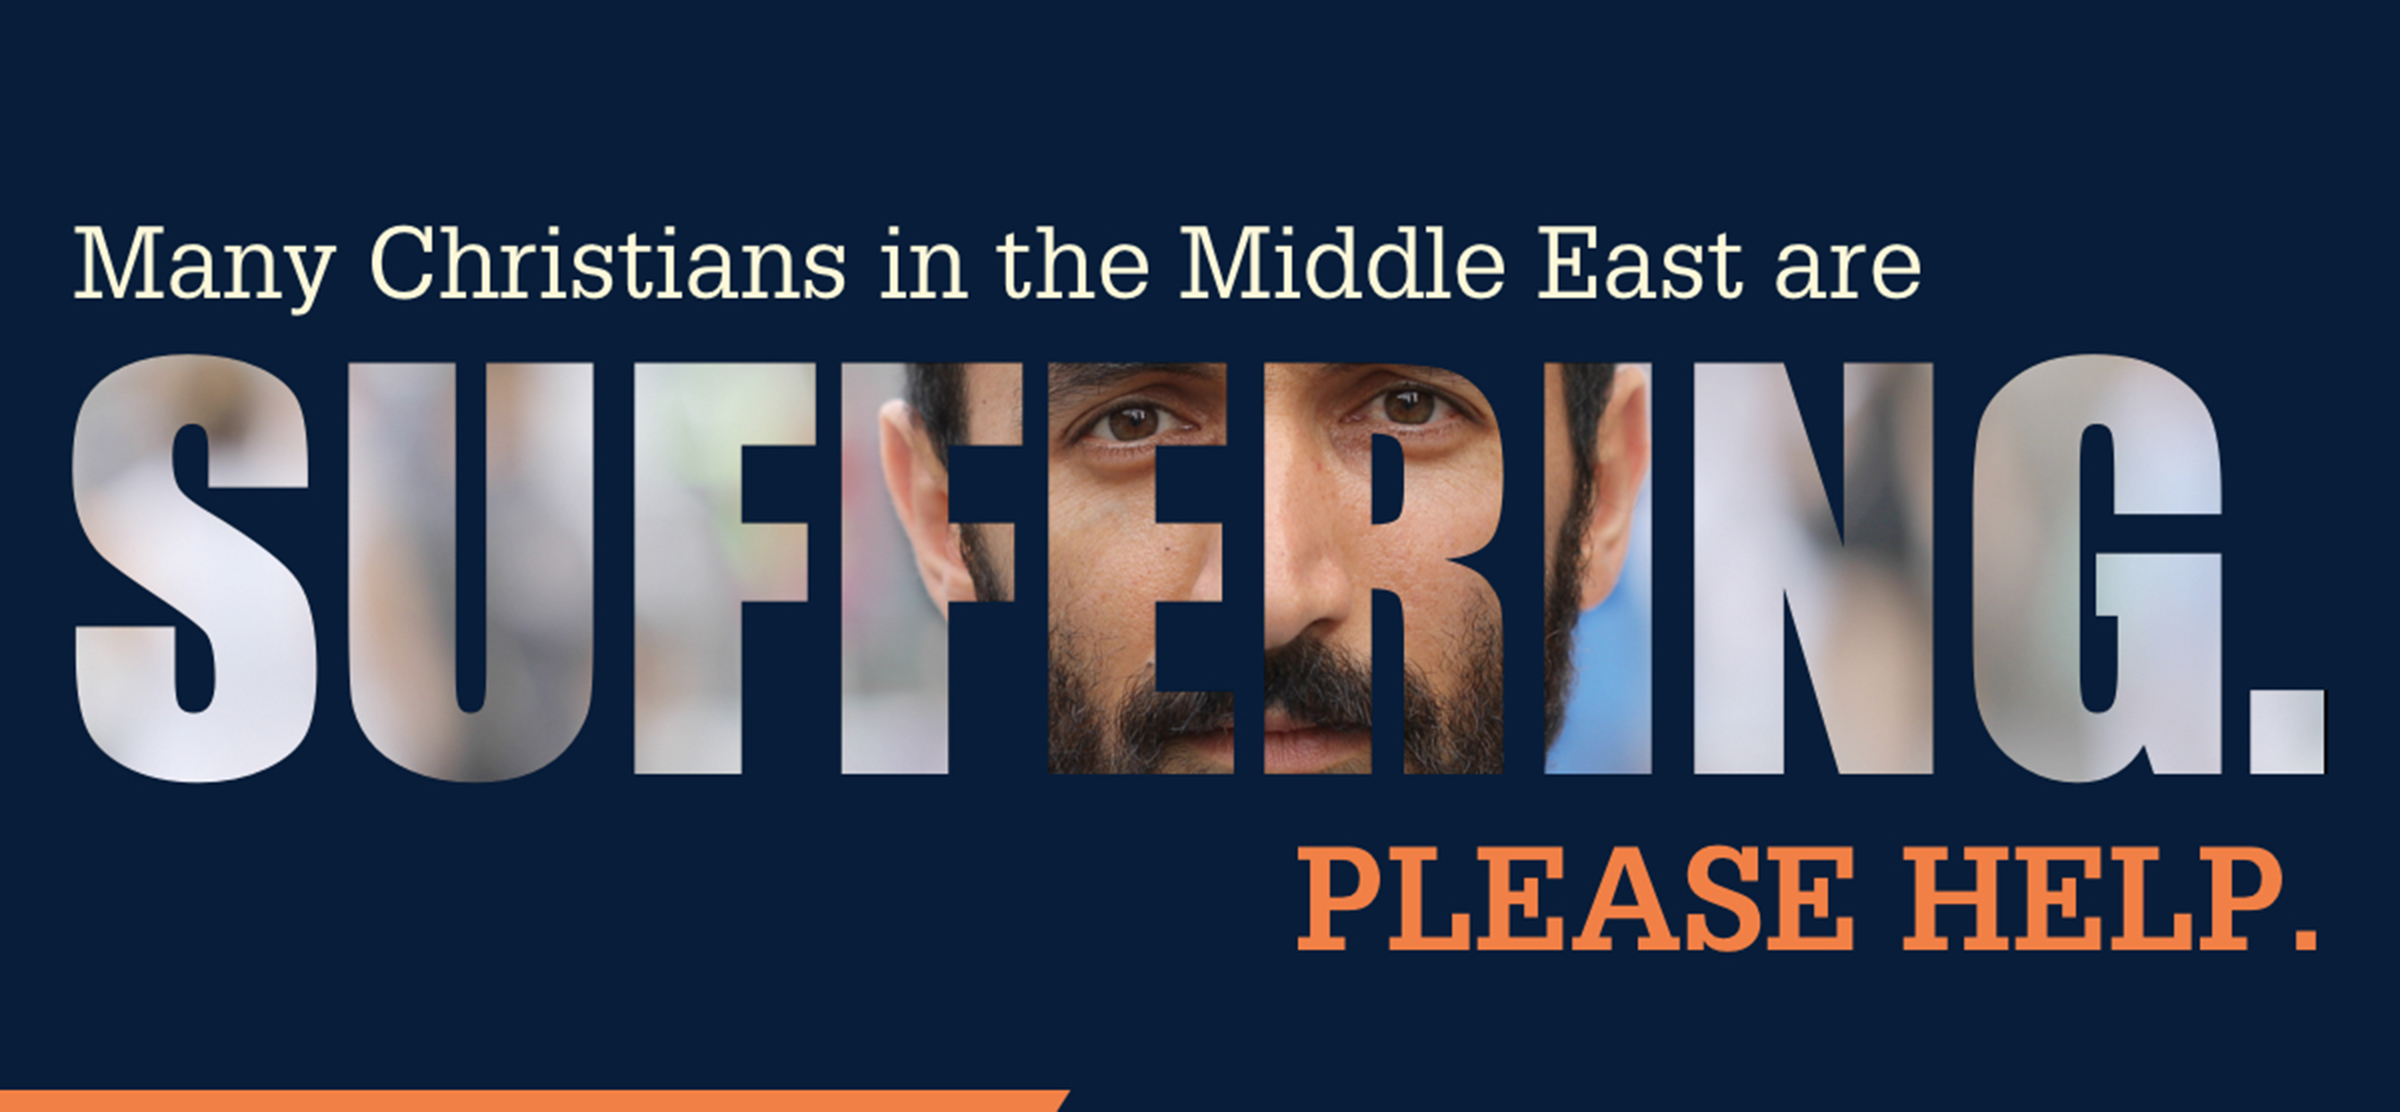 Trans World Radio Helps Lonely Christians in the Middle East Realize that they are Not Alone with 'Hope for the Middle East' Broadcasts